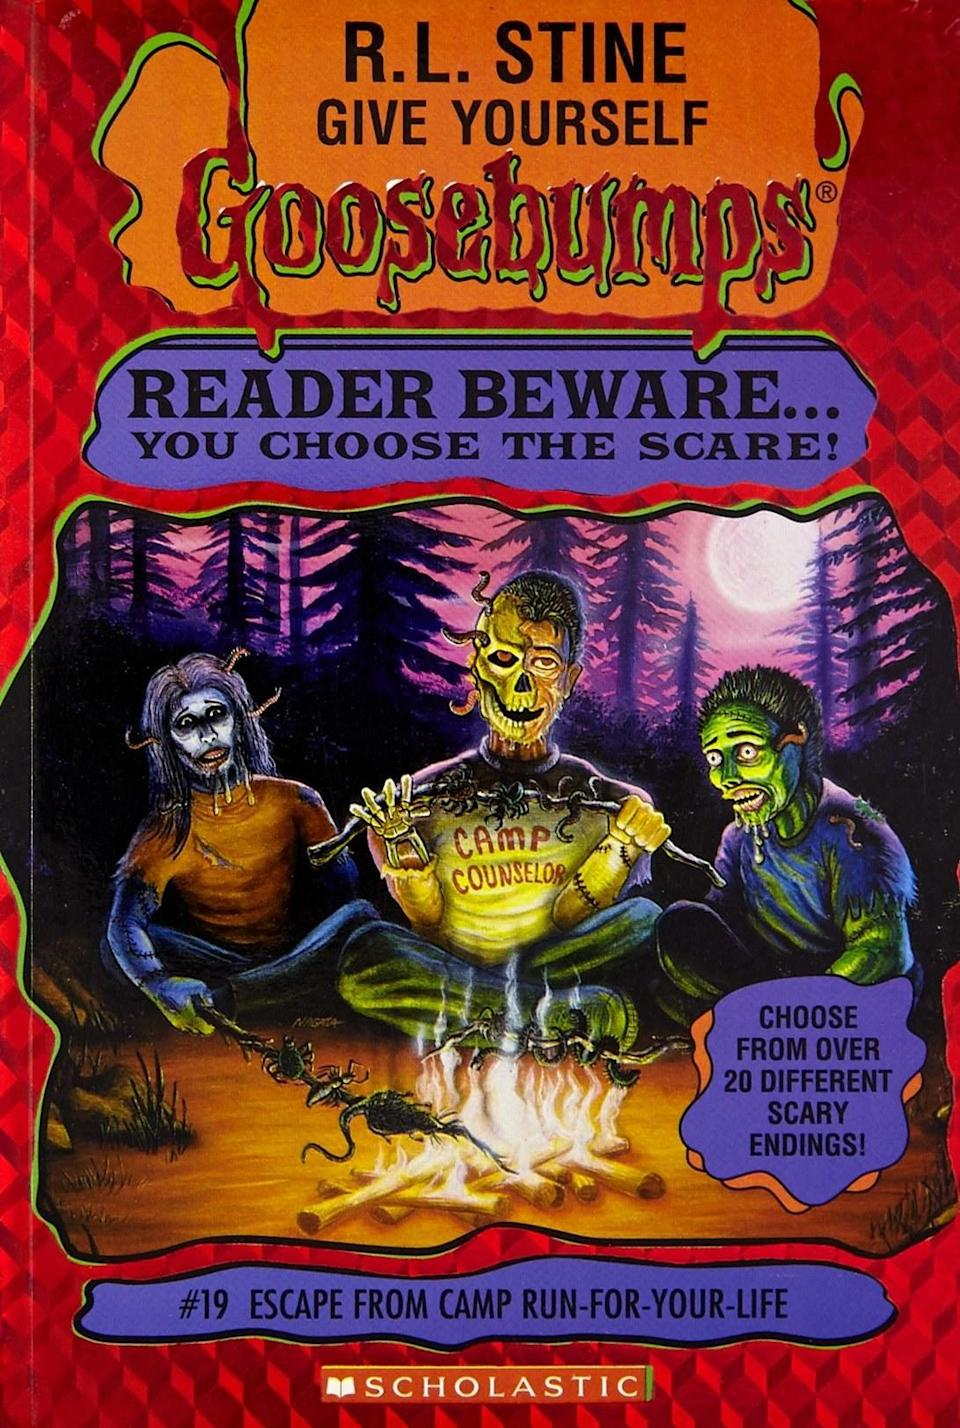 Photo of a book cover showing a half-skeleton man, zombie, and other creature, roasting snakes at a campfire